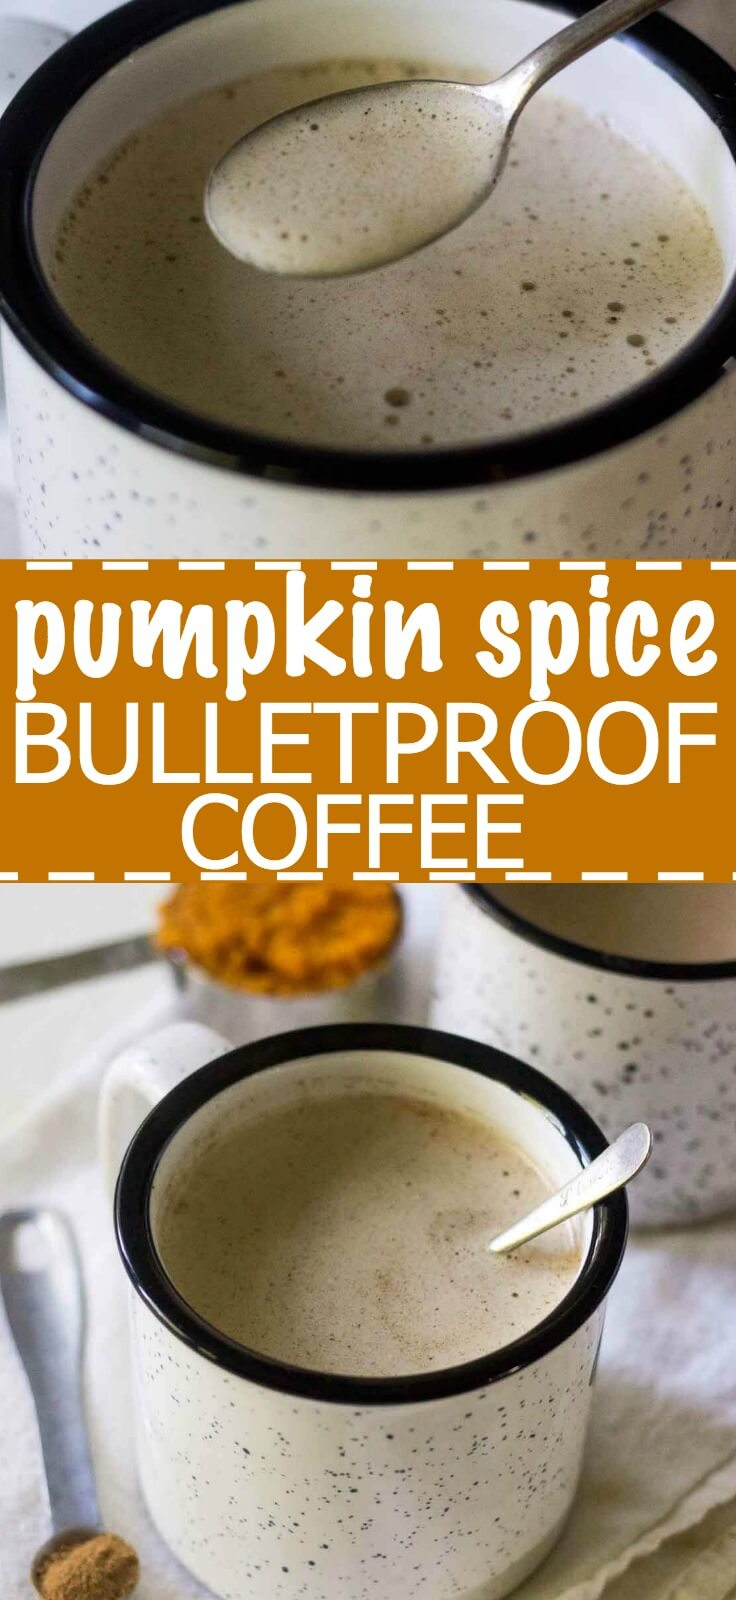 Bulletproof coffee is not your average morning cup of Joe. Bulletproof coffee is a superfood drink that gives you energy and better cognitive function. It keeps you full longer and helps you perform at your highest potential.